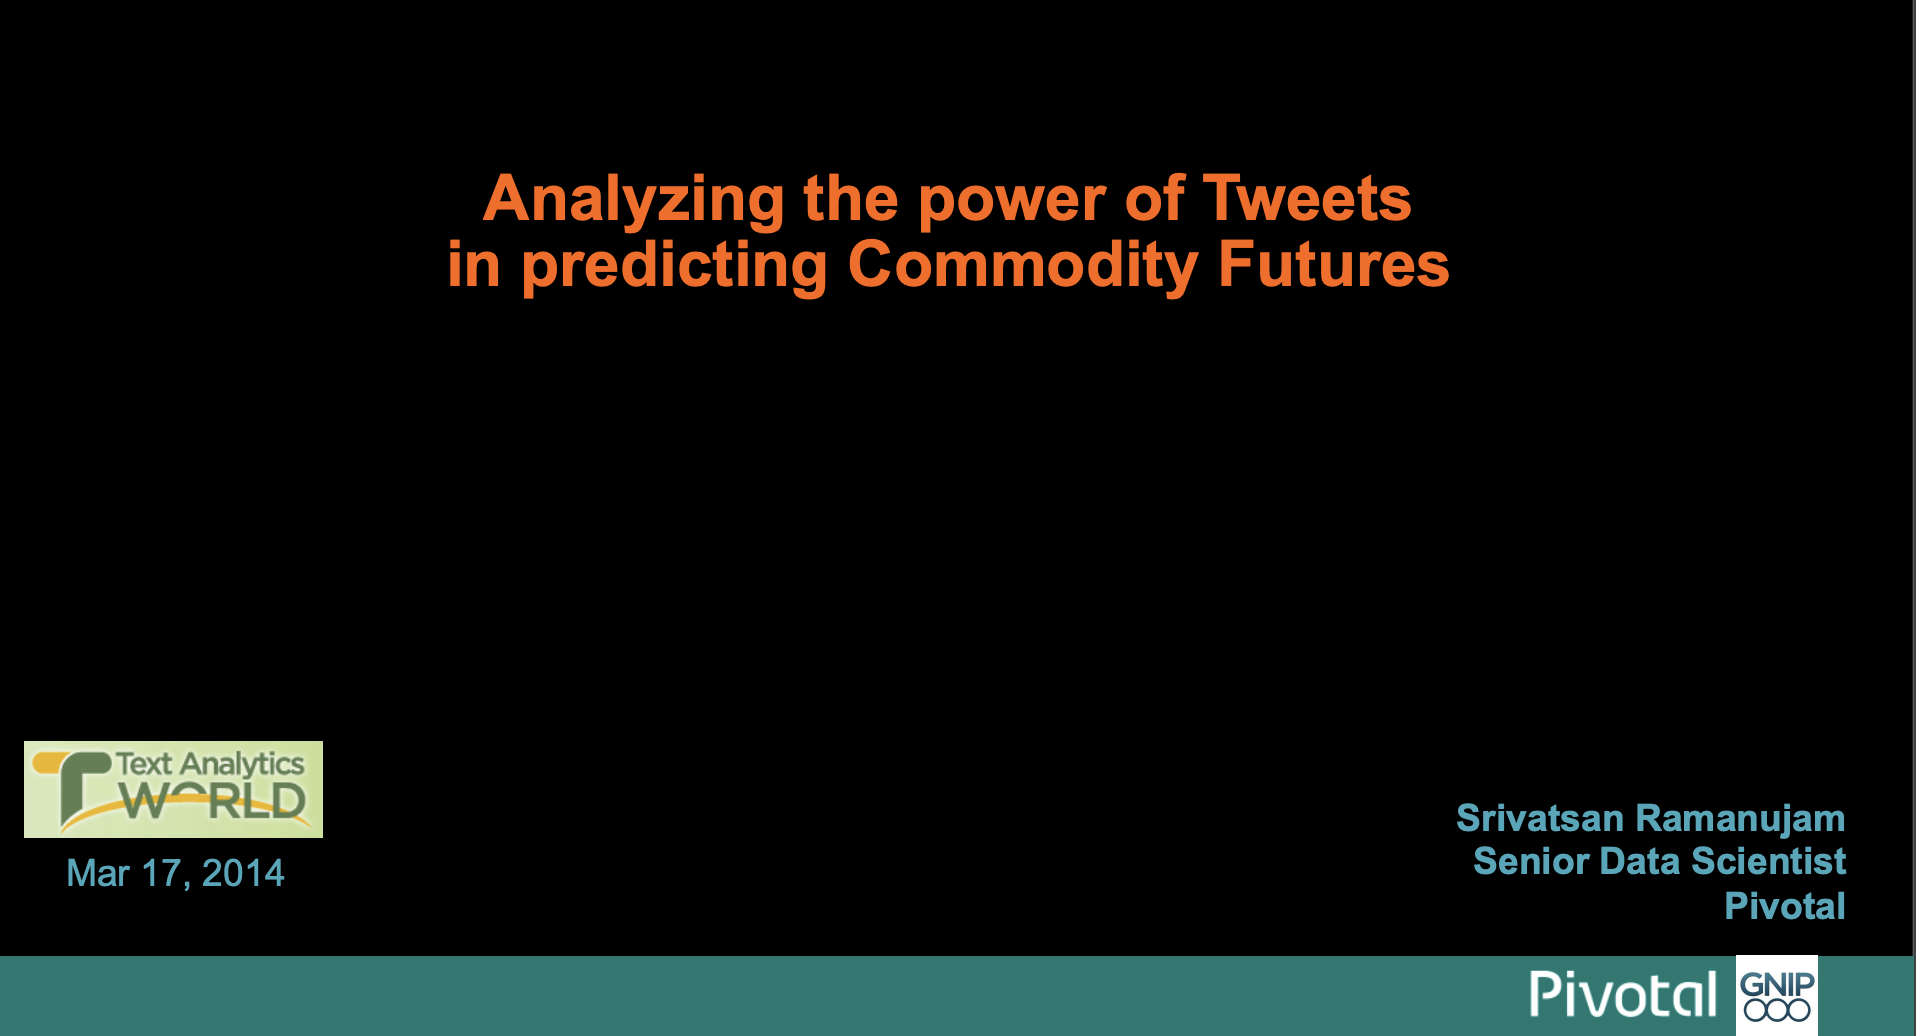 Predicting Commodity Futures with Twitter